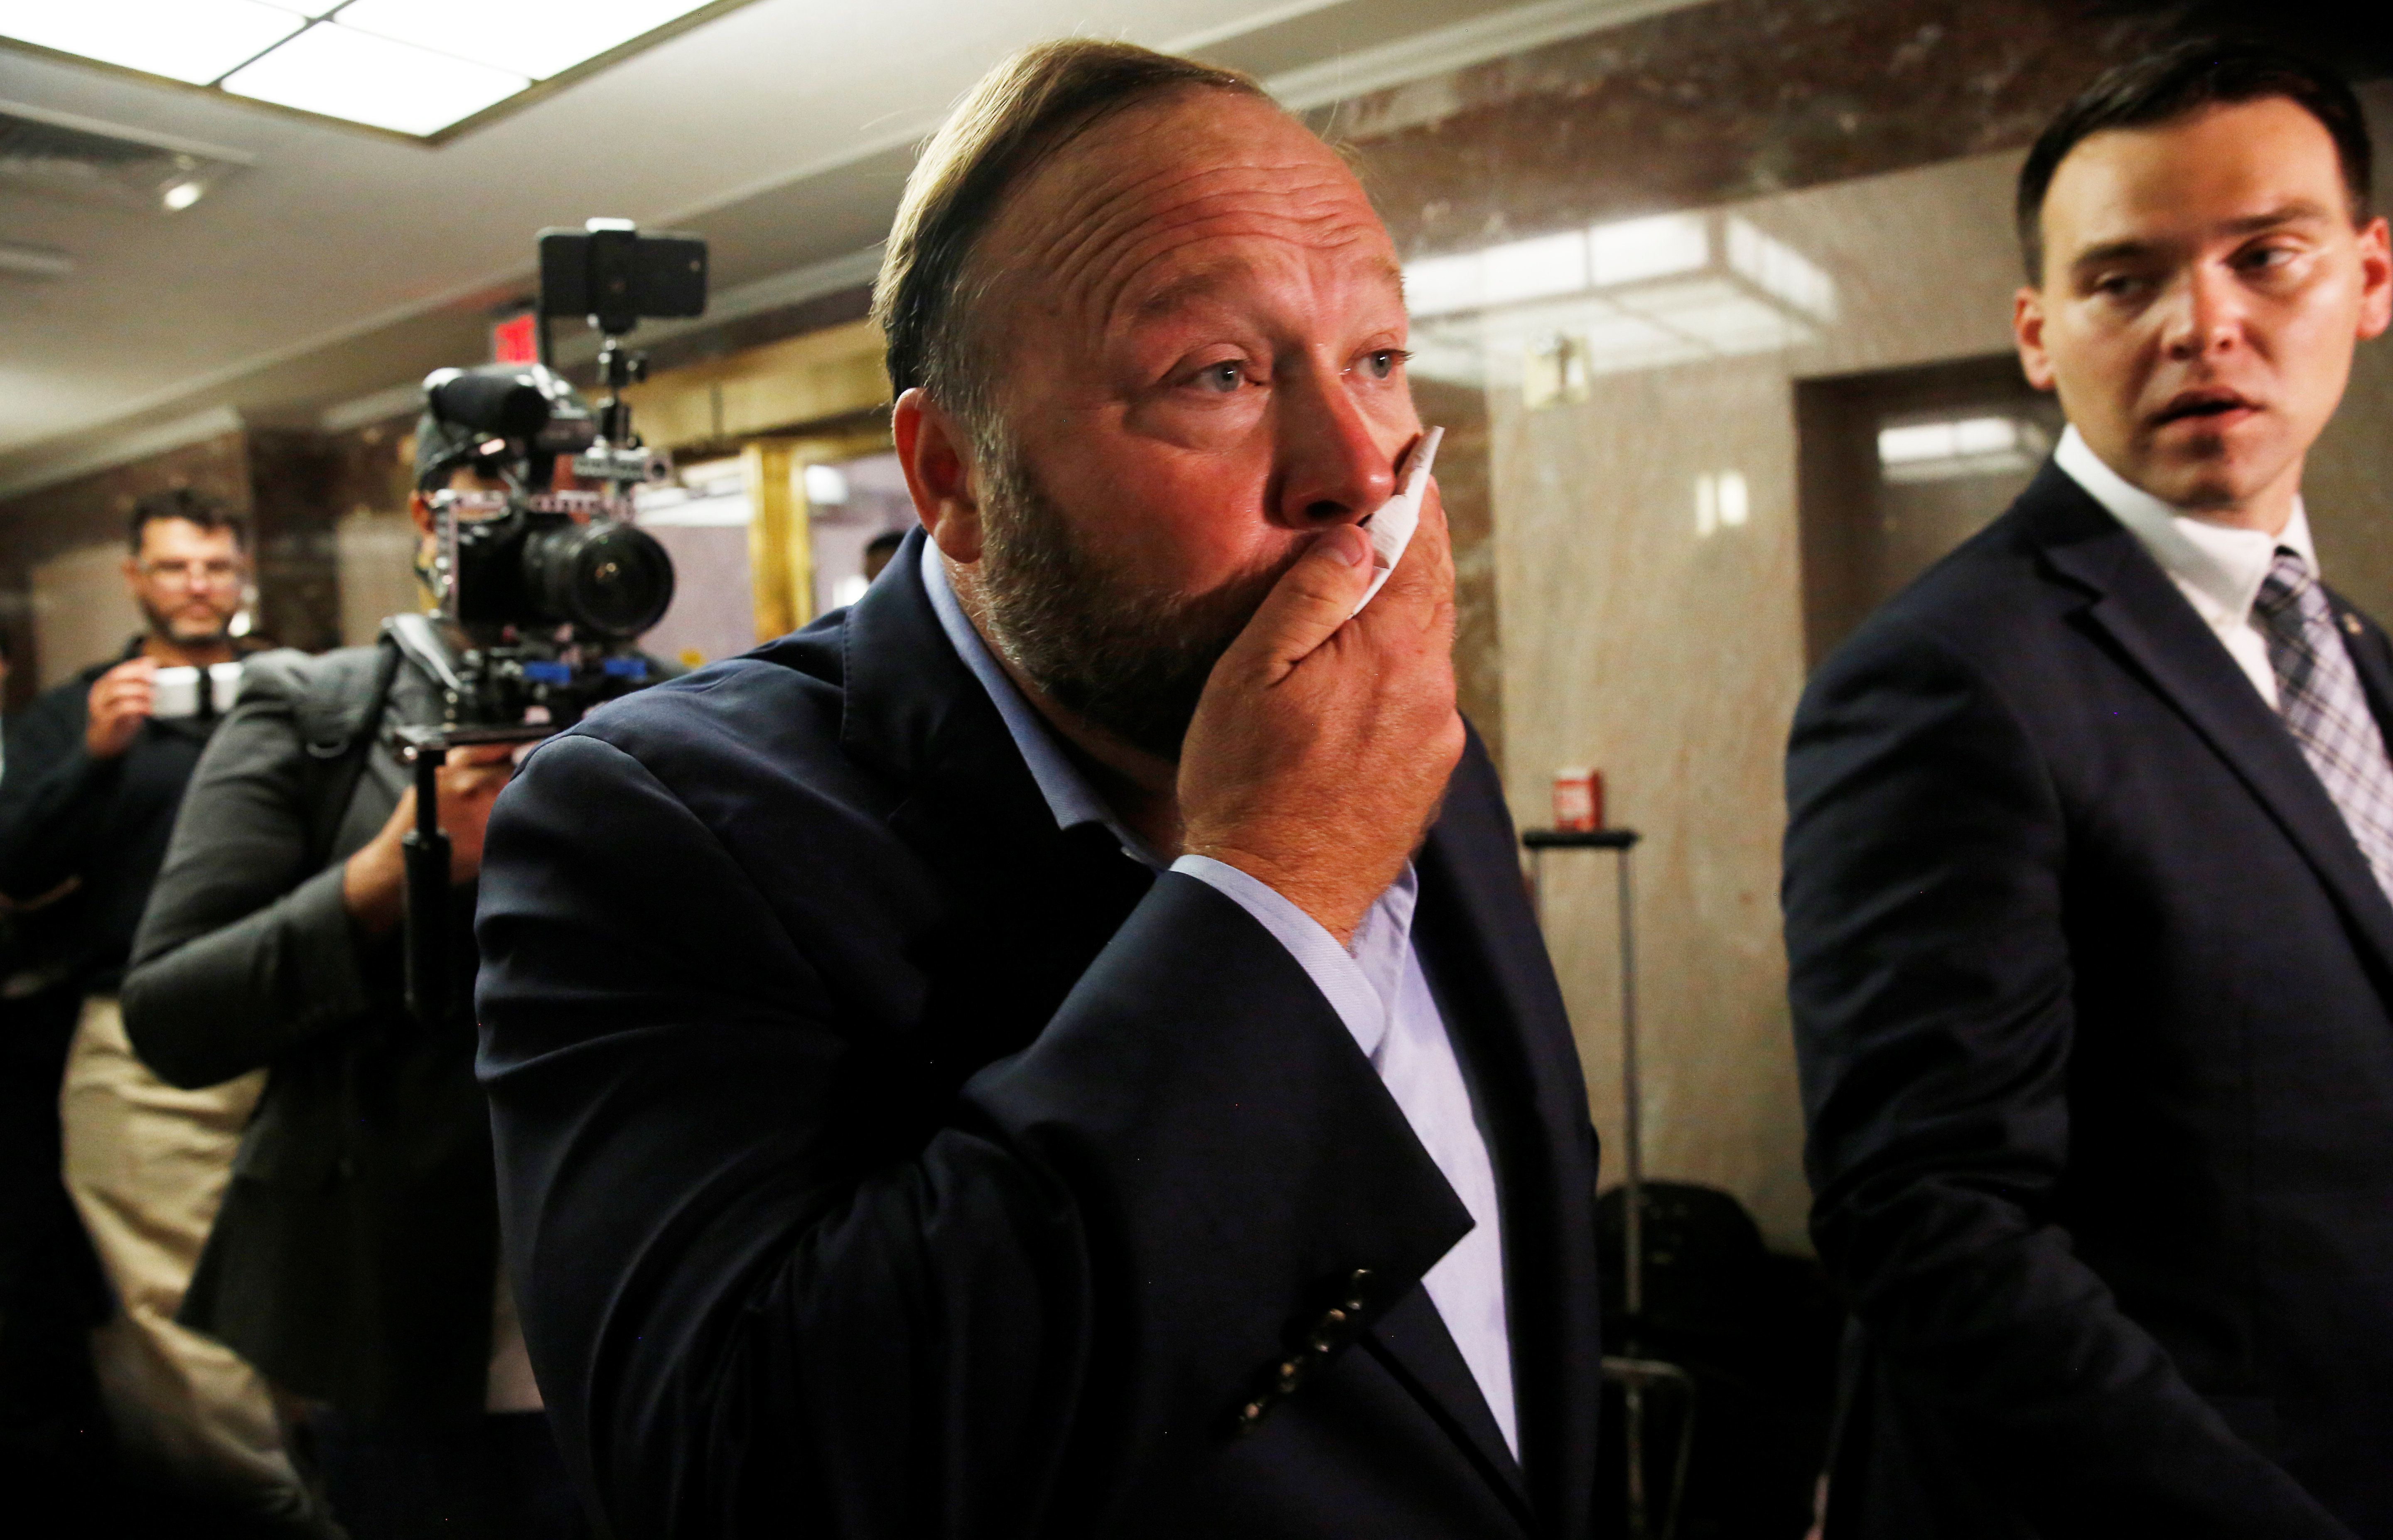 Radio host Alex Jones of Infowars wipes his face after talking to the press as he walks into a Senate Intelligence Committee hearing to listen to Twitter CEO Jack Dorsey and Facebook COO Sheryl Sandberg testify on foreign influence operations on social media platforms on Capitol Hill in Washington, U.S., September 5, 2018. REUTERS/Jim Bourg